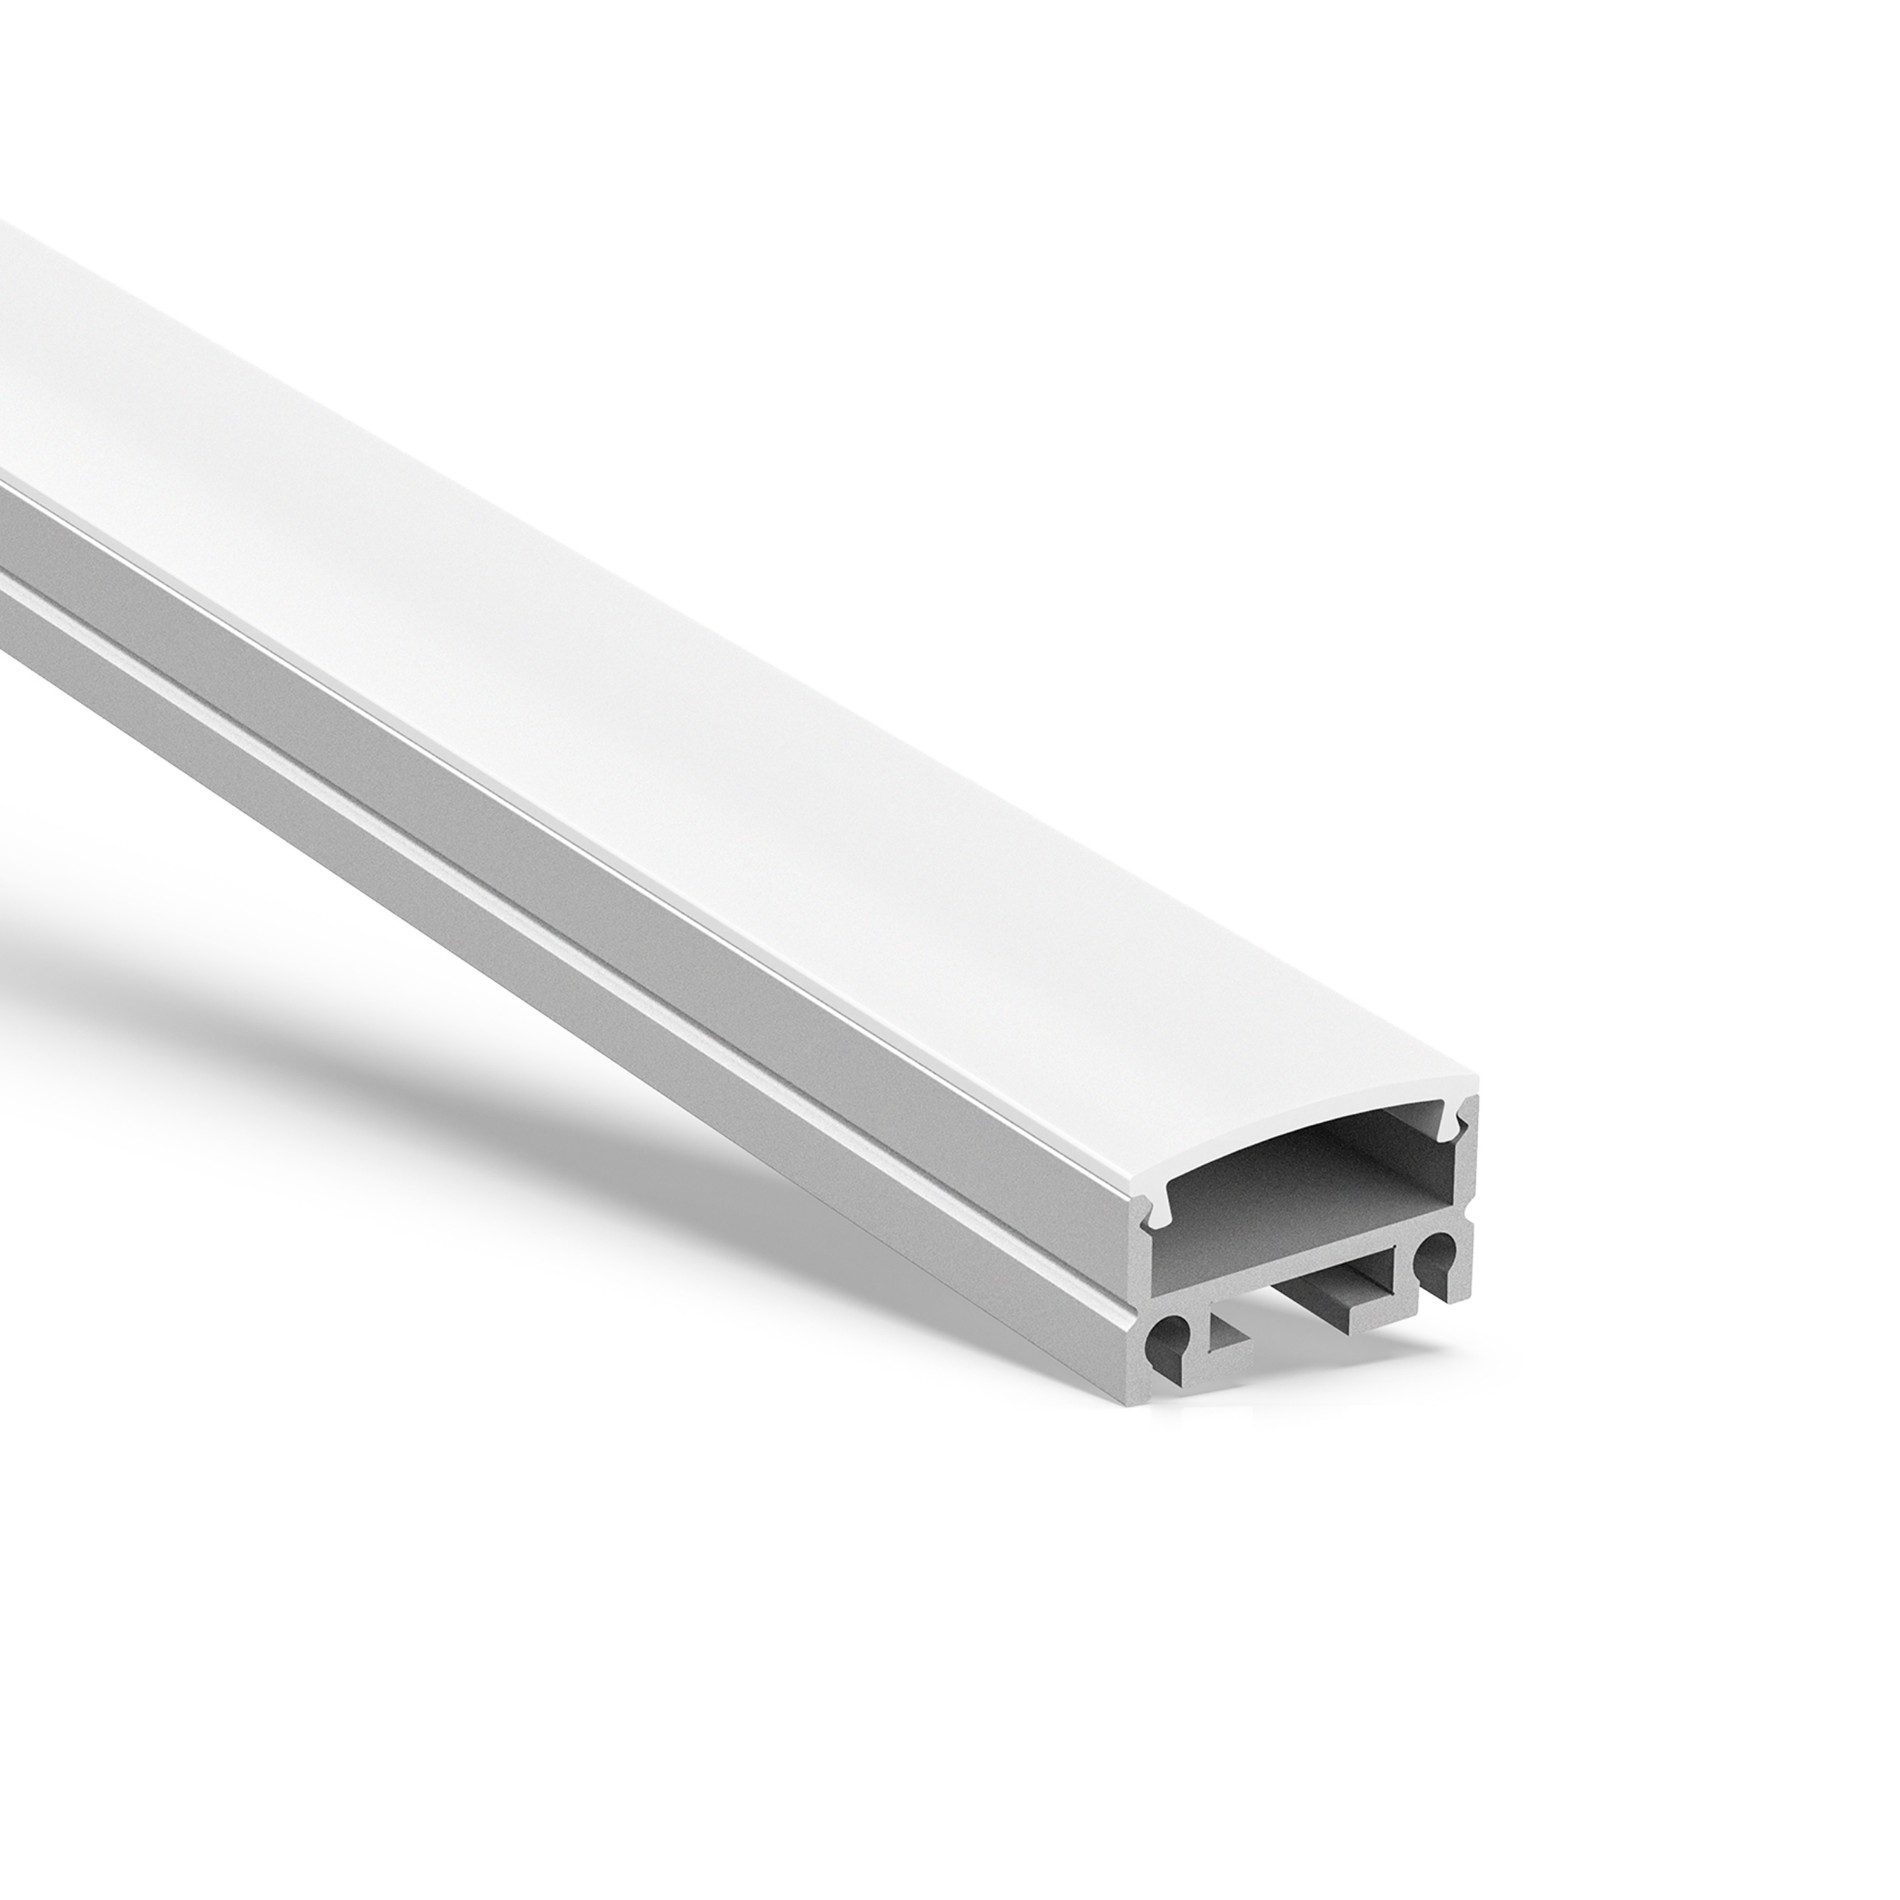 AT11 Flat Surface or suspended aluminum led profile 19.5x12.4mm